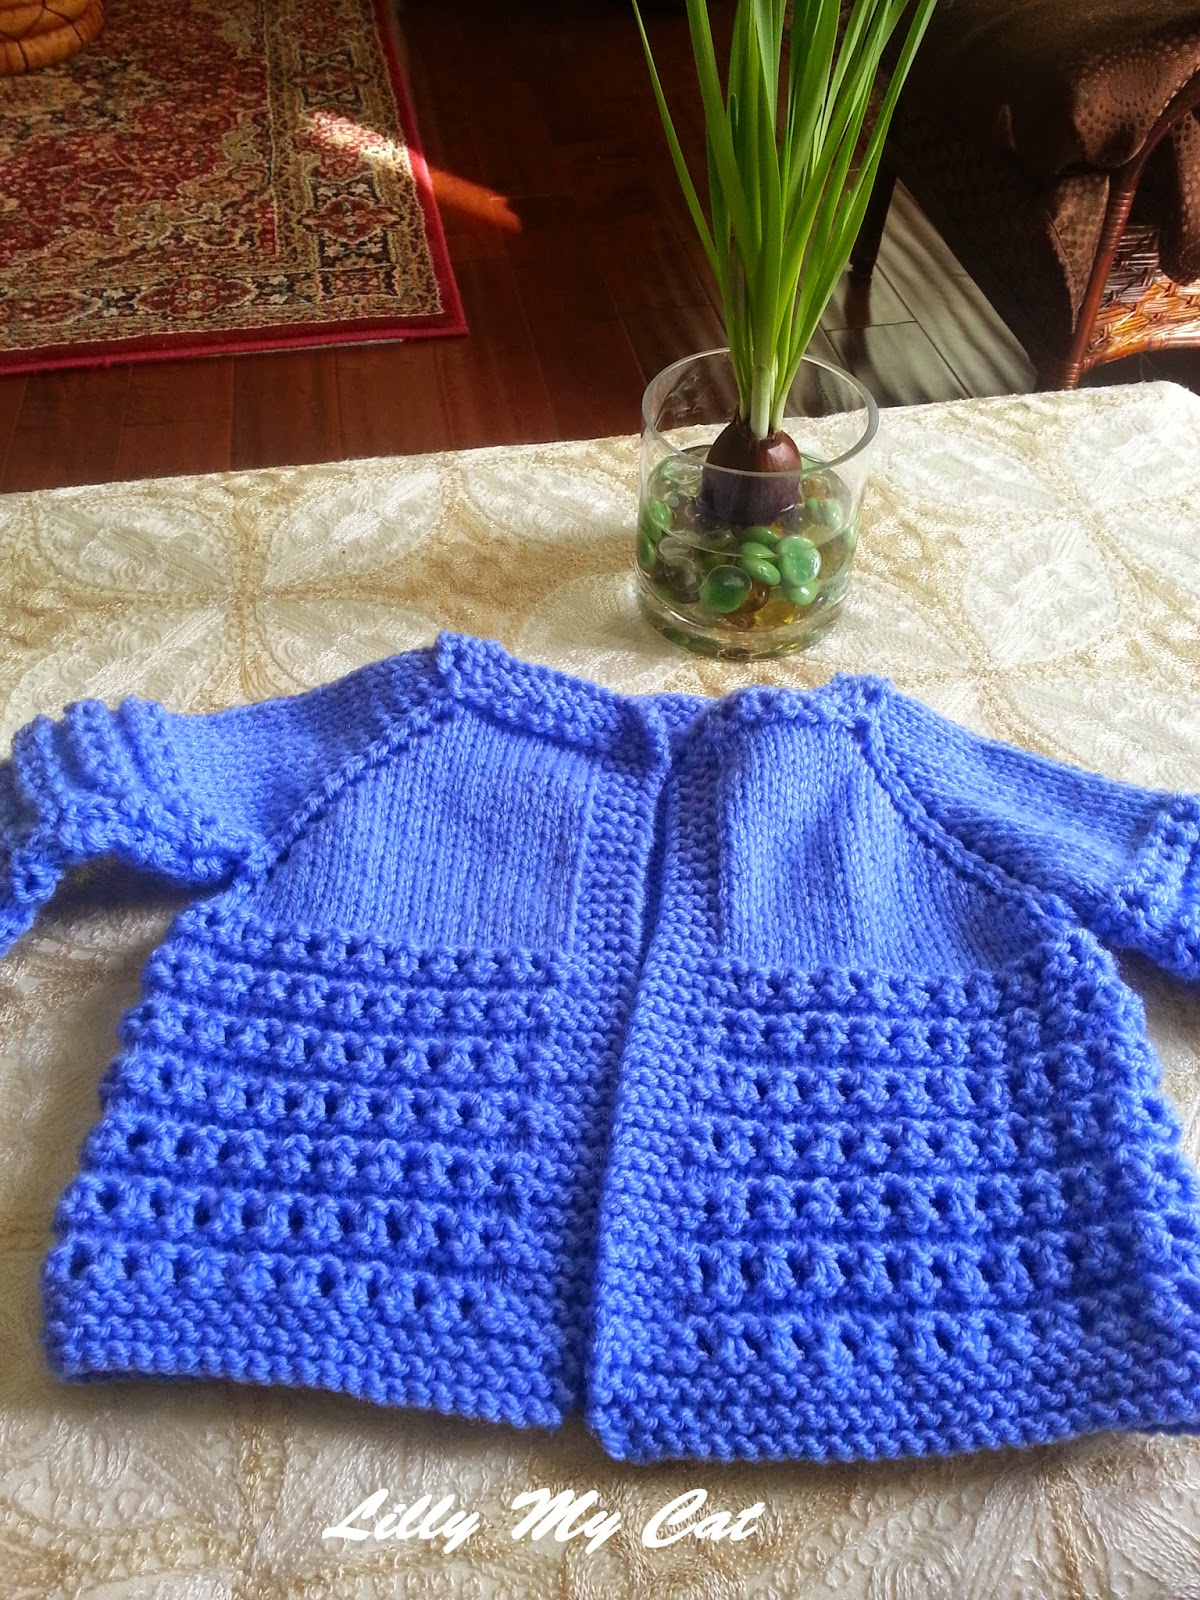 Lilly My Cat: TOP DOWN BABY SWEATER - Plymouth Yarn Company - FREE PATTERN